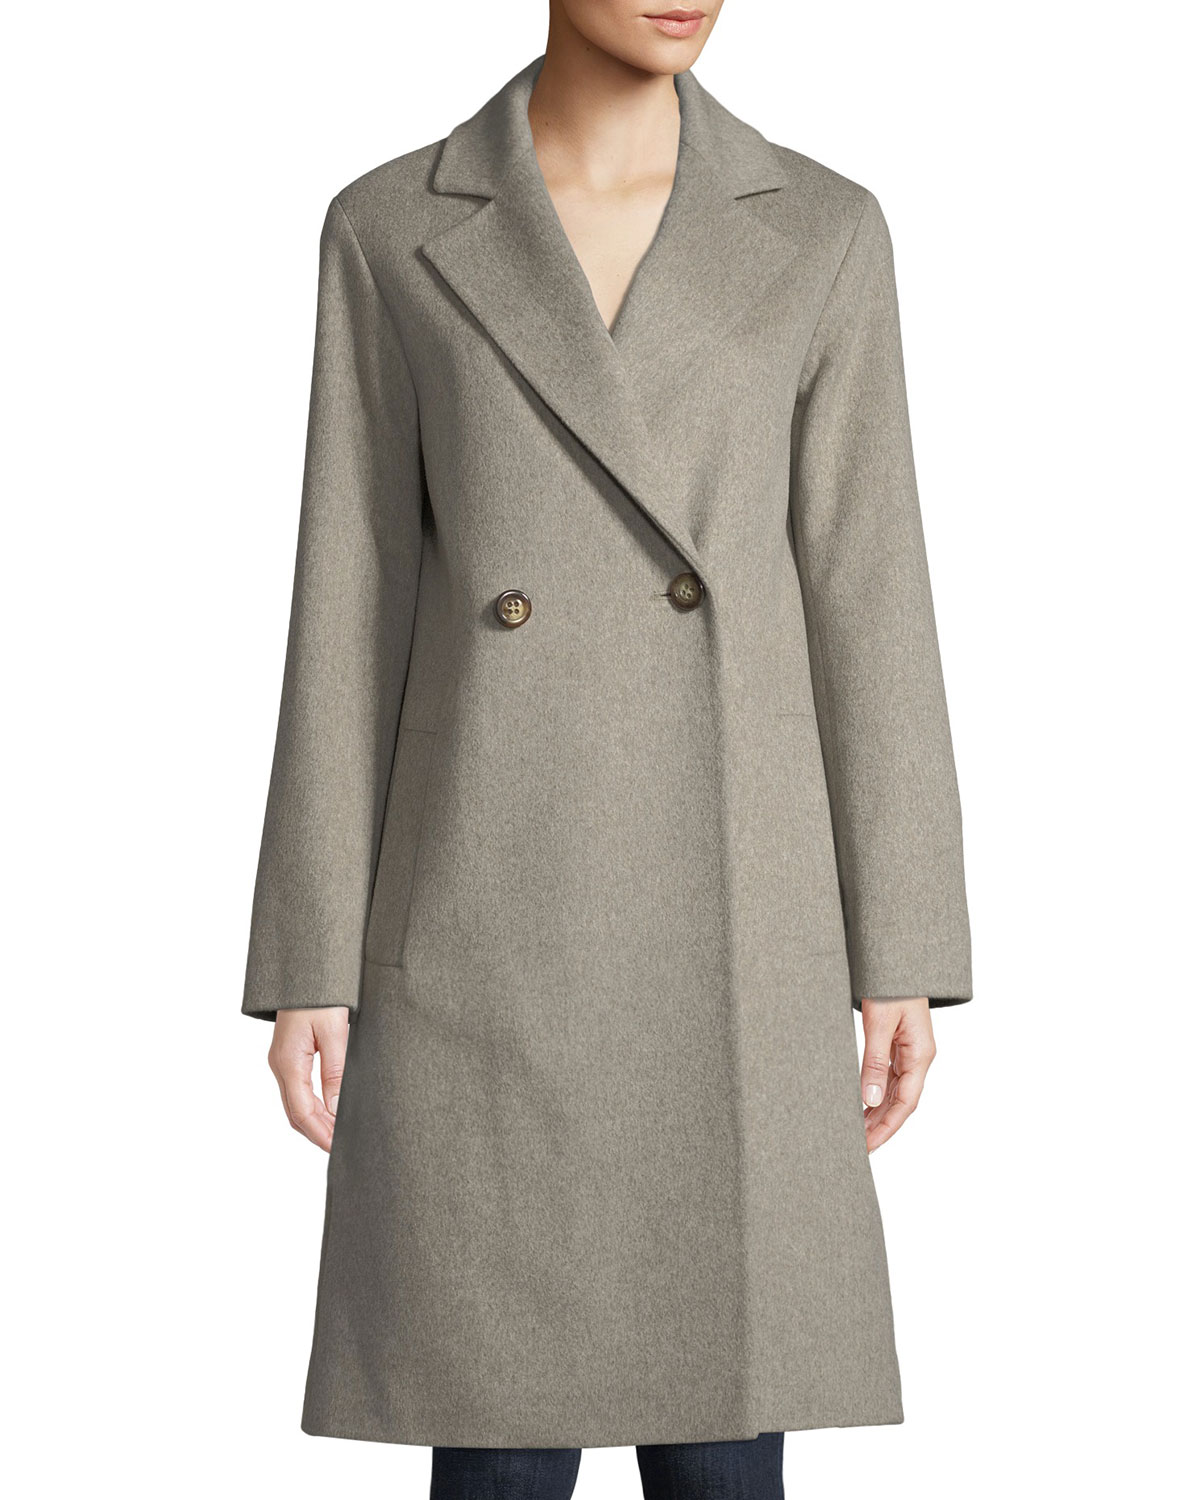 FLEURETTE Long Double-Breasted Wool Coat in Neutral Pattern